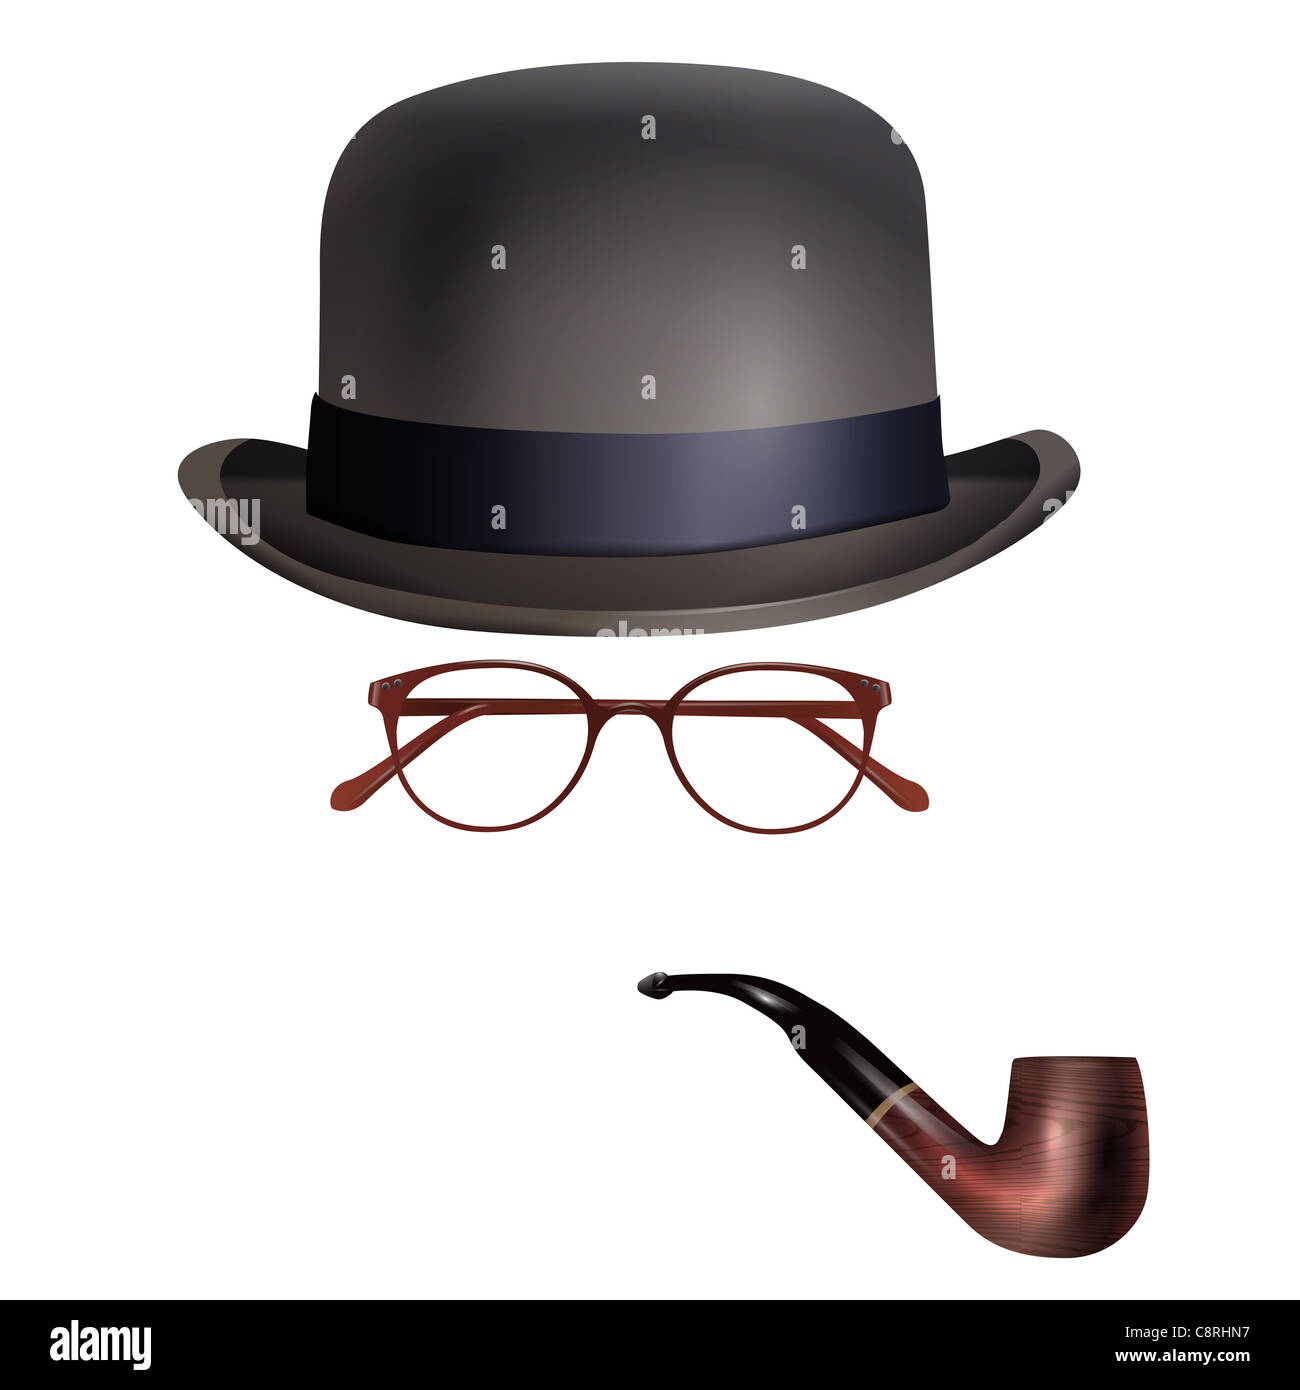 Hat, glasses and pipe against white background - Stock Image